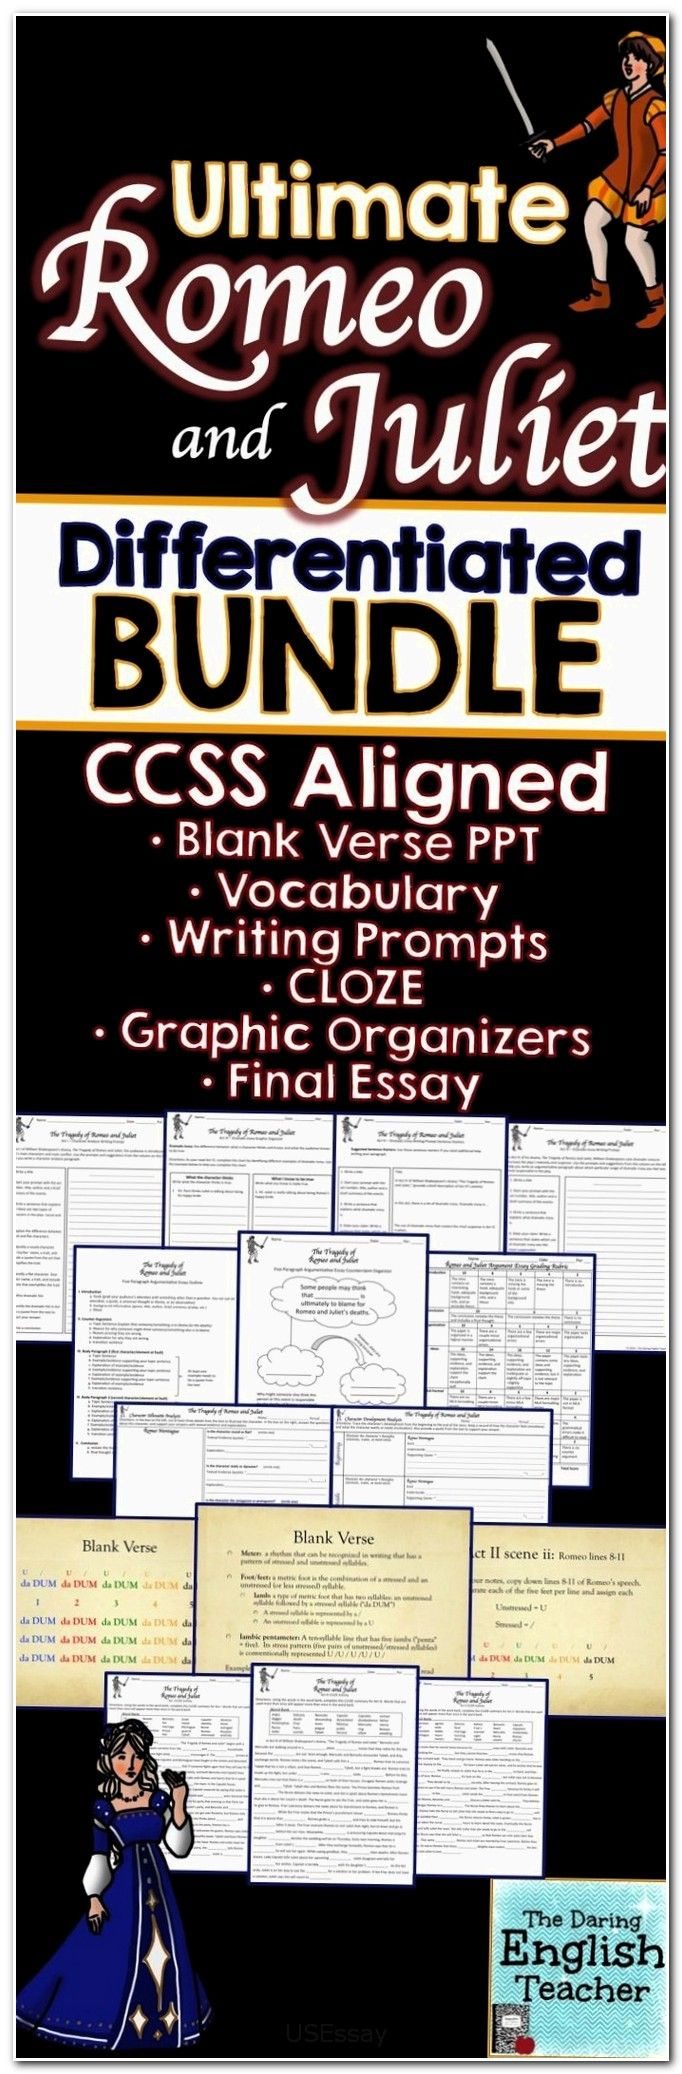 essay wrightessay essay latest topics developing thesis   essay wrightessay essay latest topics developing thesis statements interesting persuasive speech